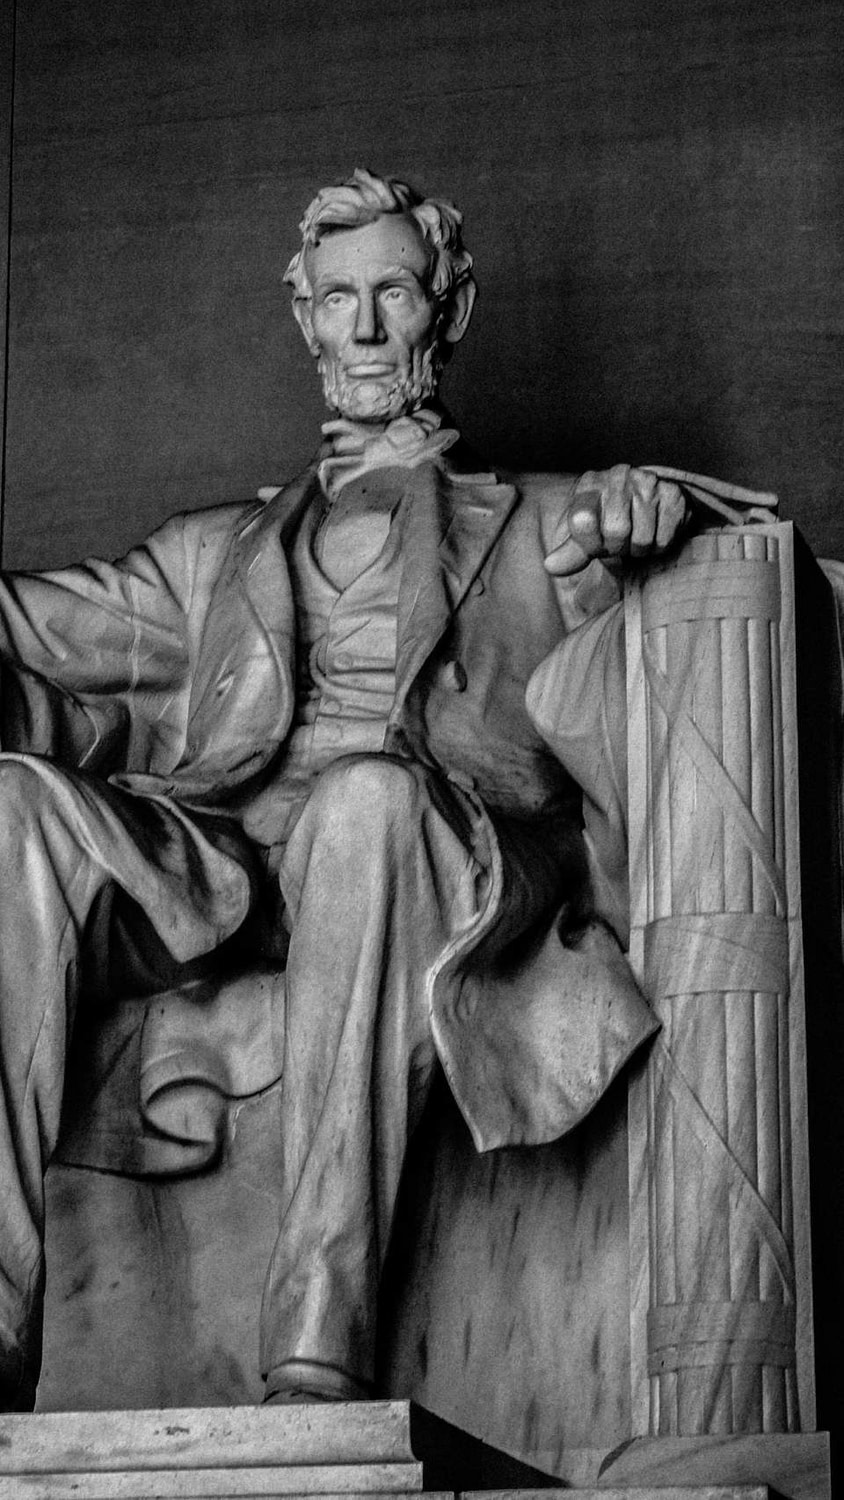 A wonderful shot of the Abraham Lincoln Memorial in Washington DC